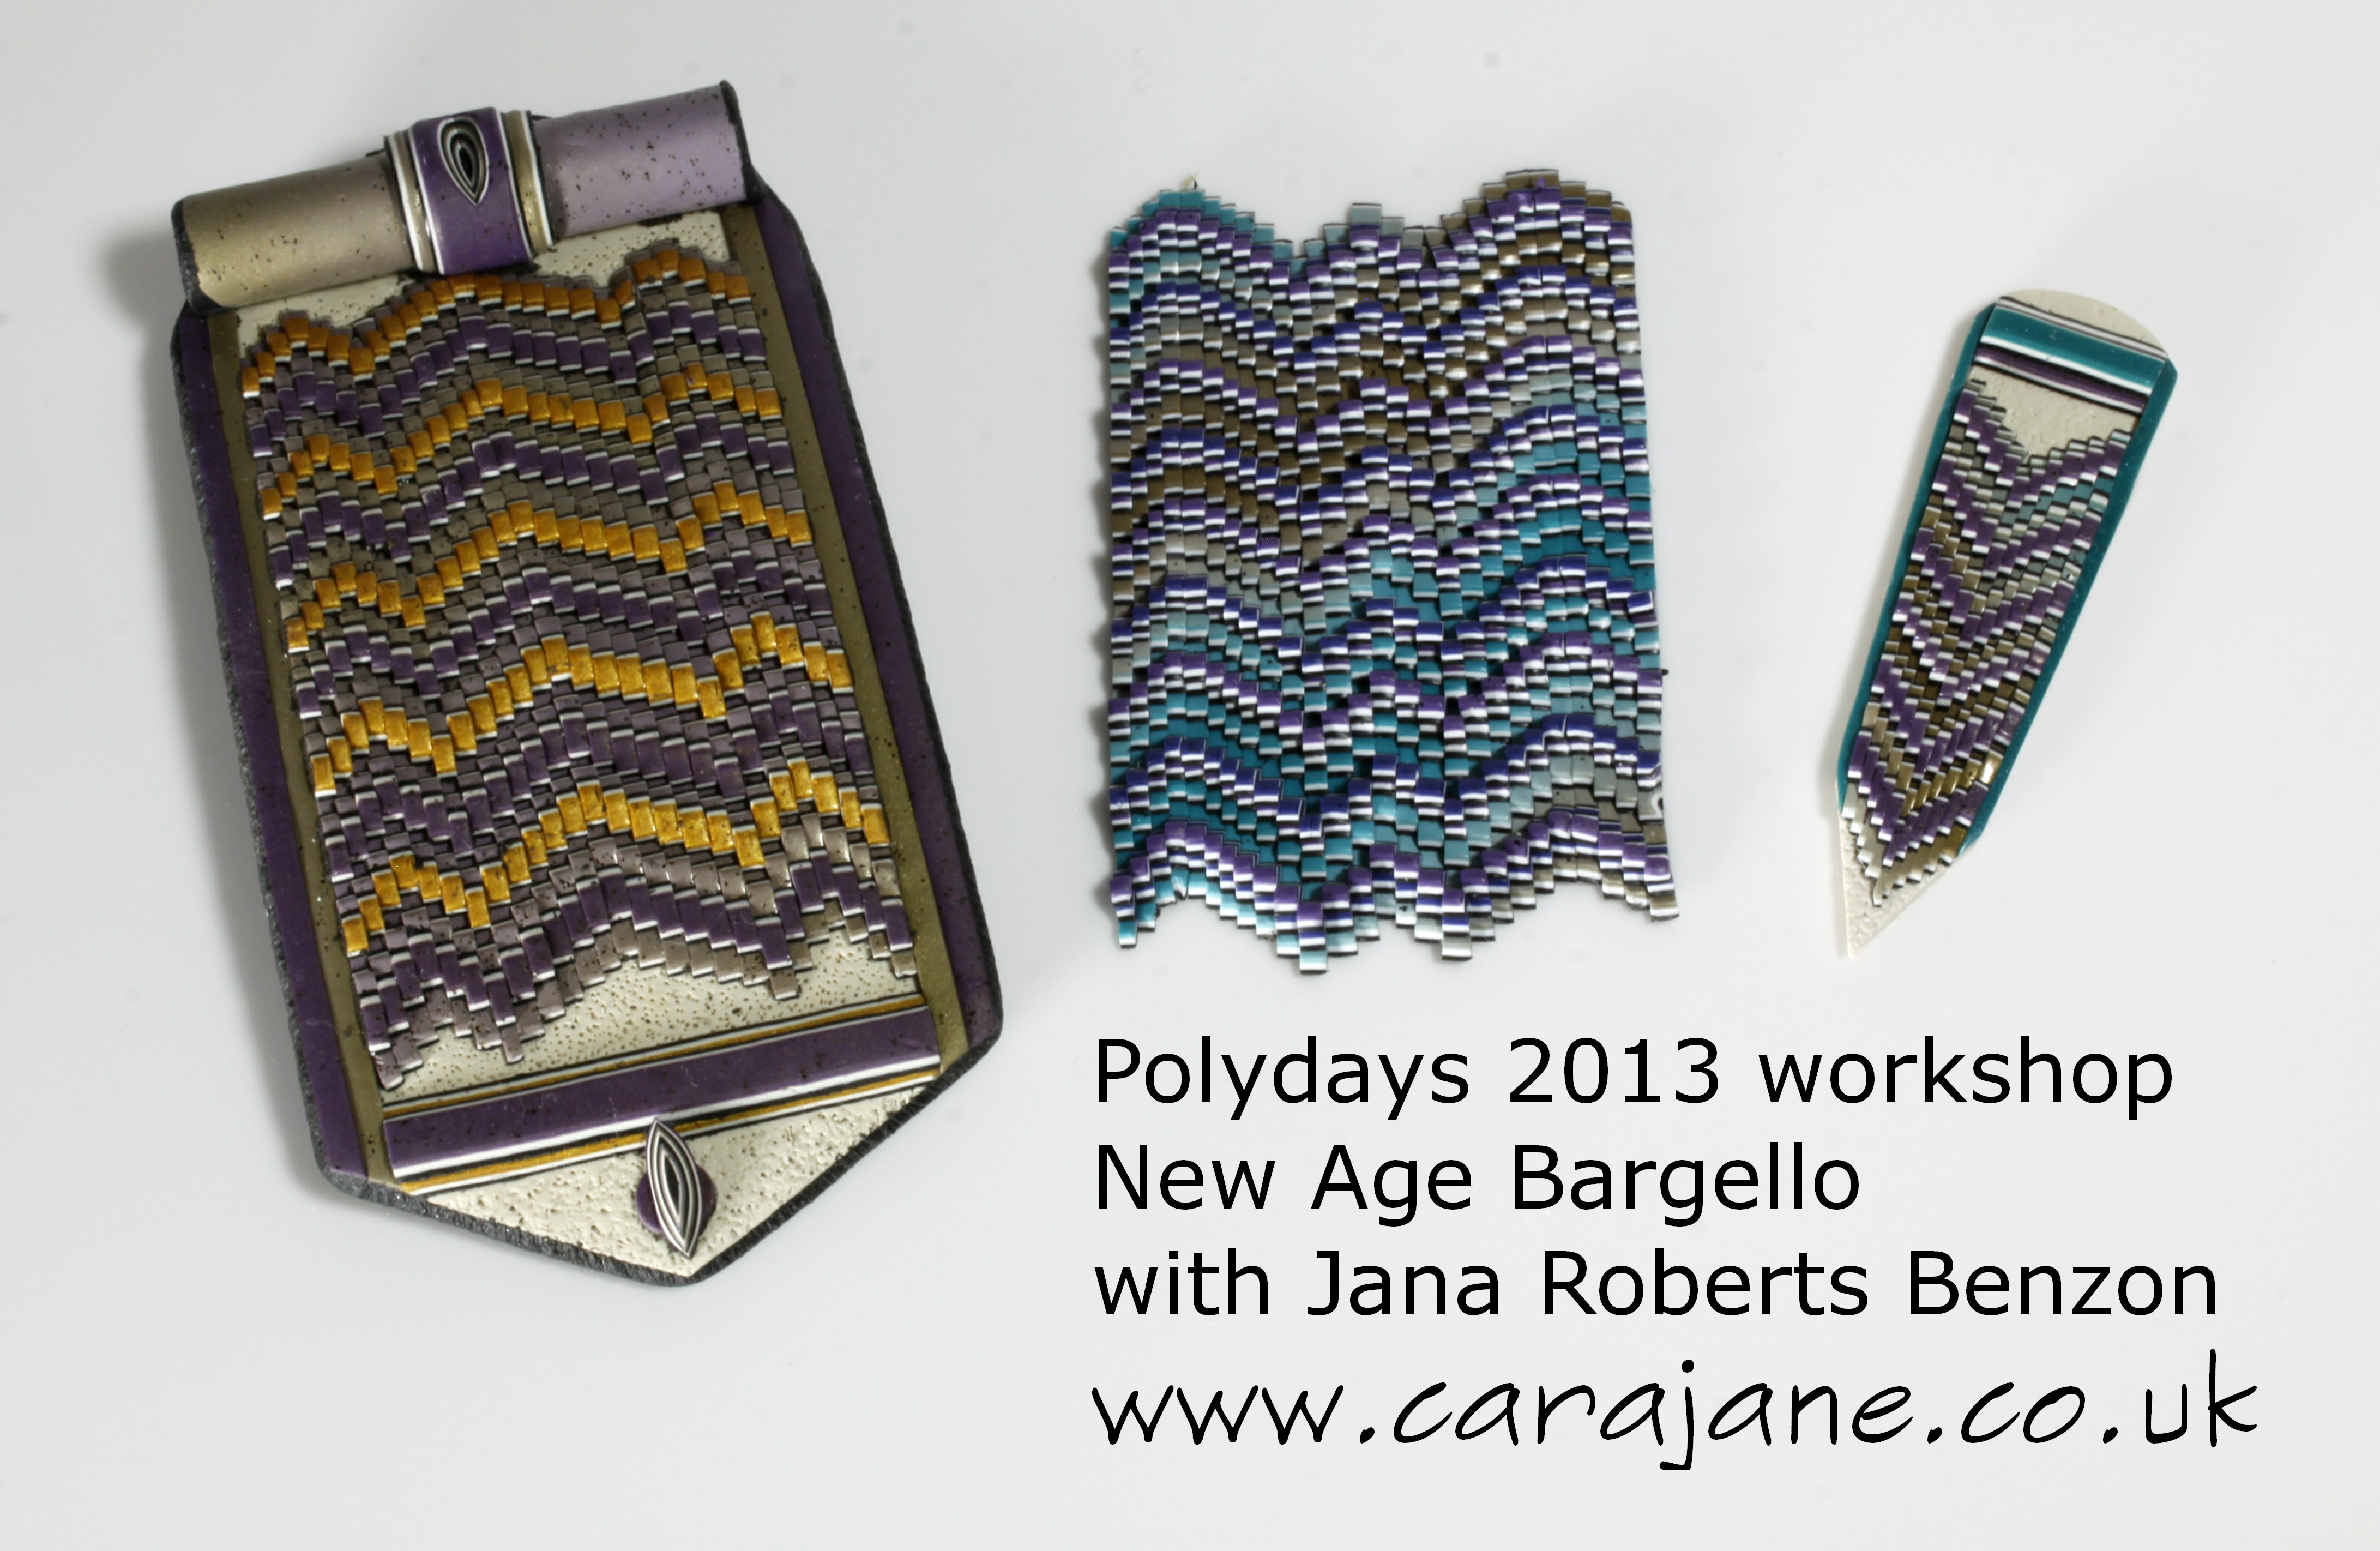 New Age Bargello workshop pieces by Cara Jane